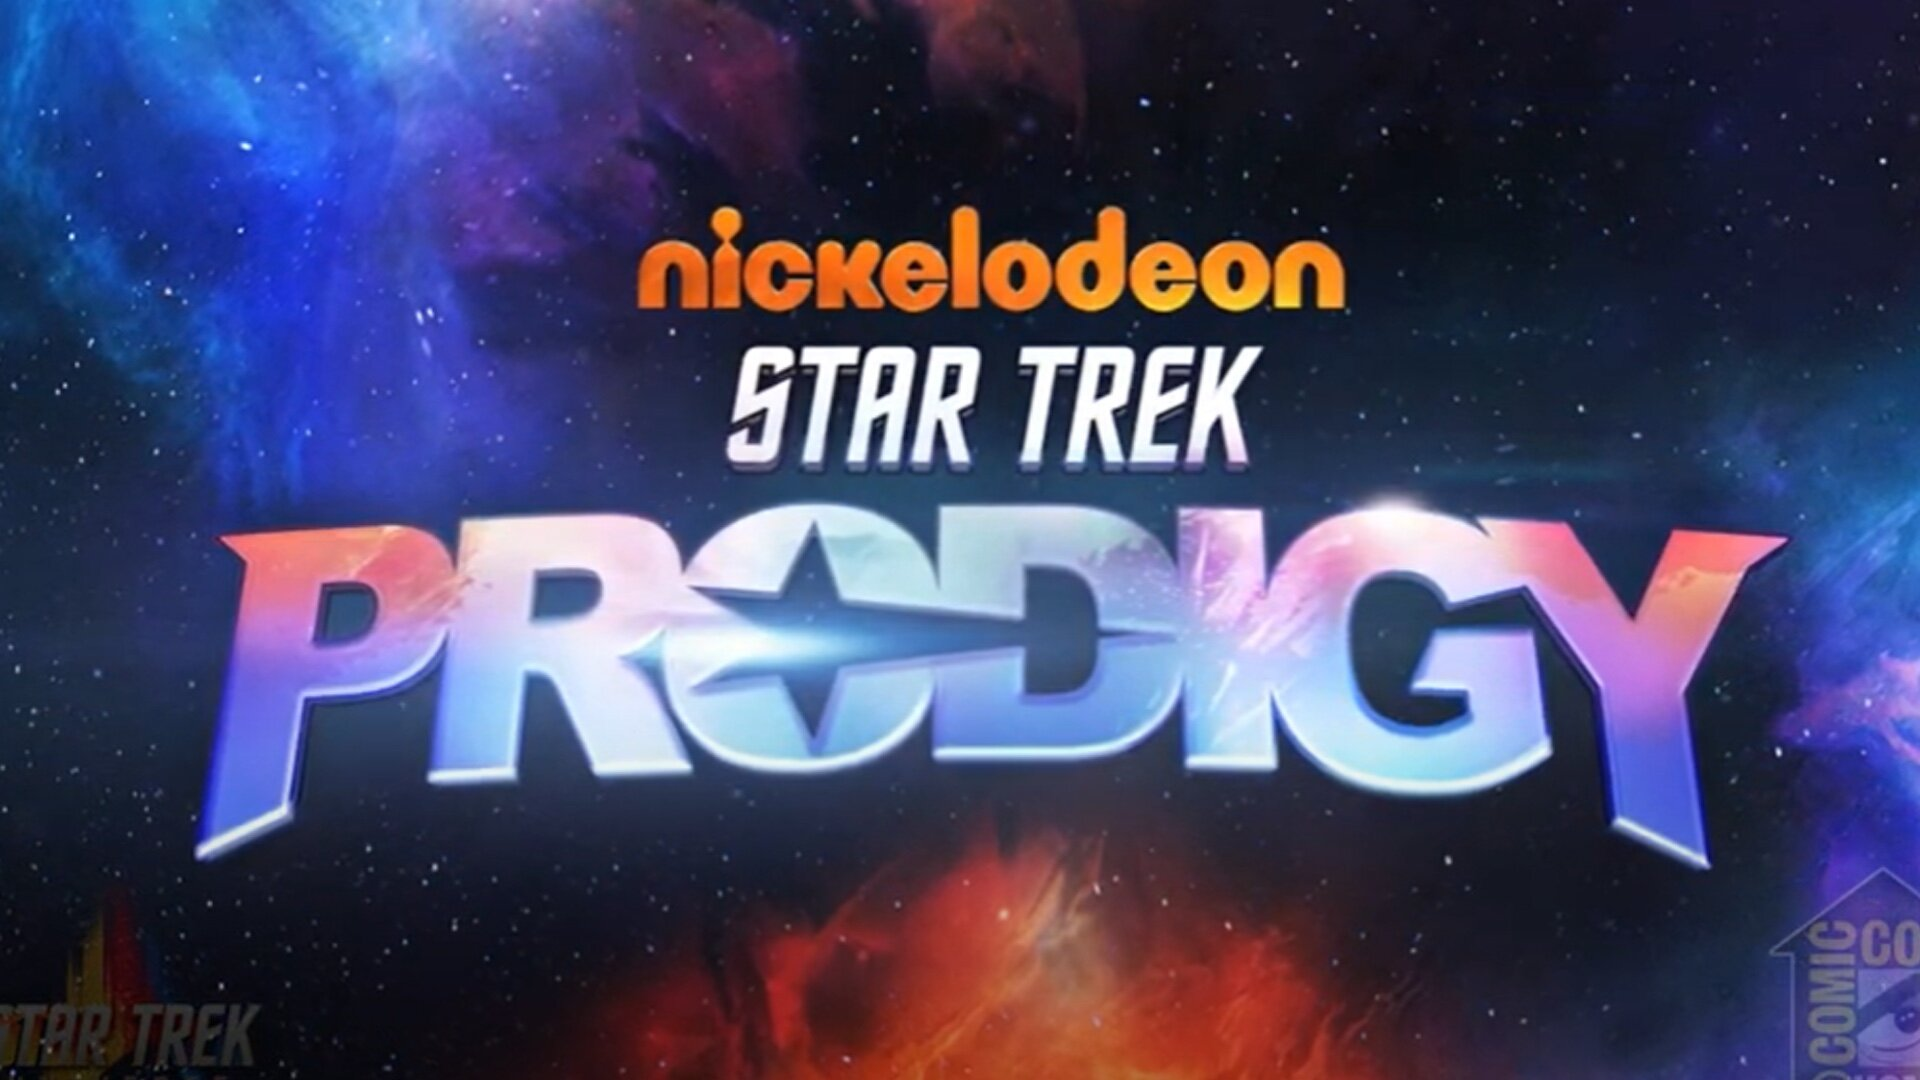 Logo and Info Revealed for Nickelodeon's STAR TREK Animated Kids Series STAR TREK: PRODIGY